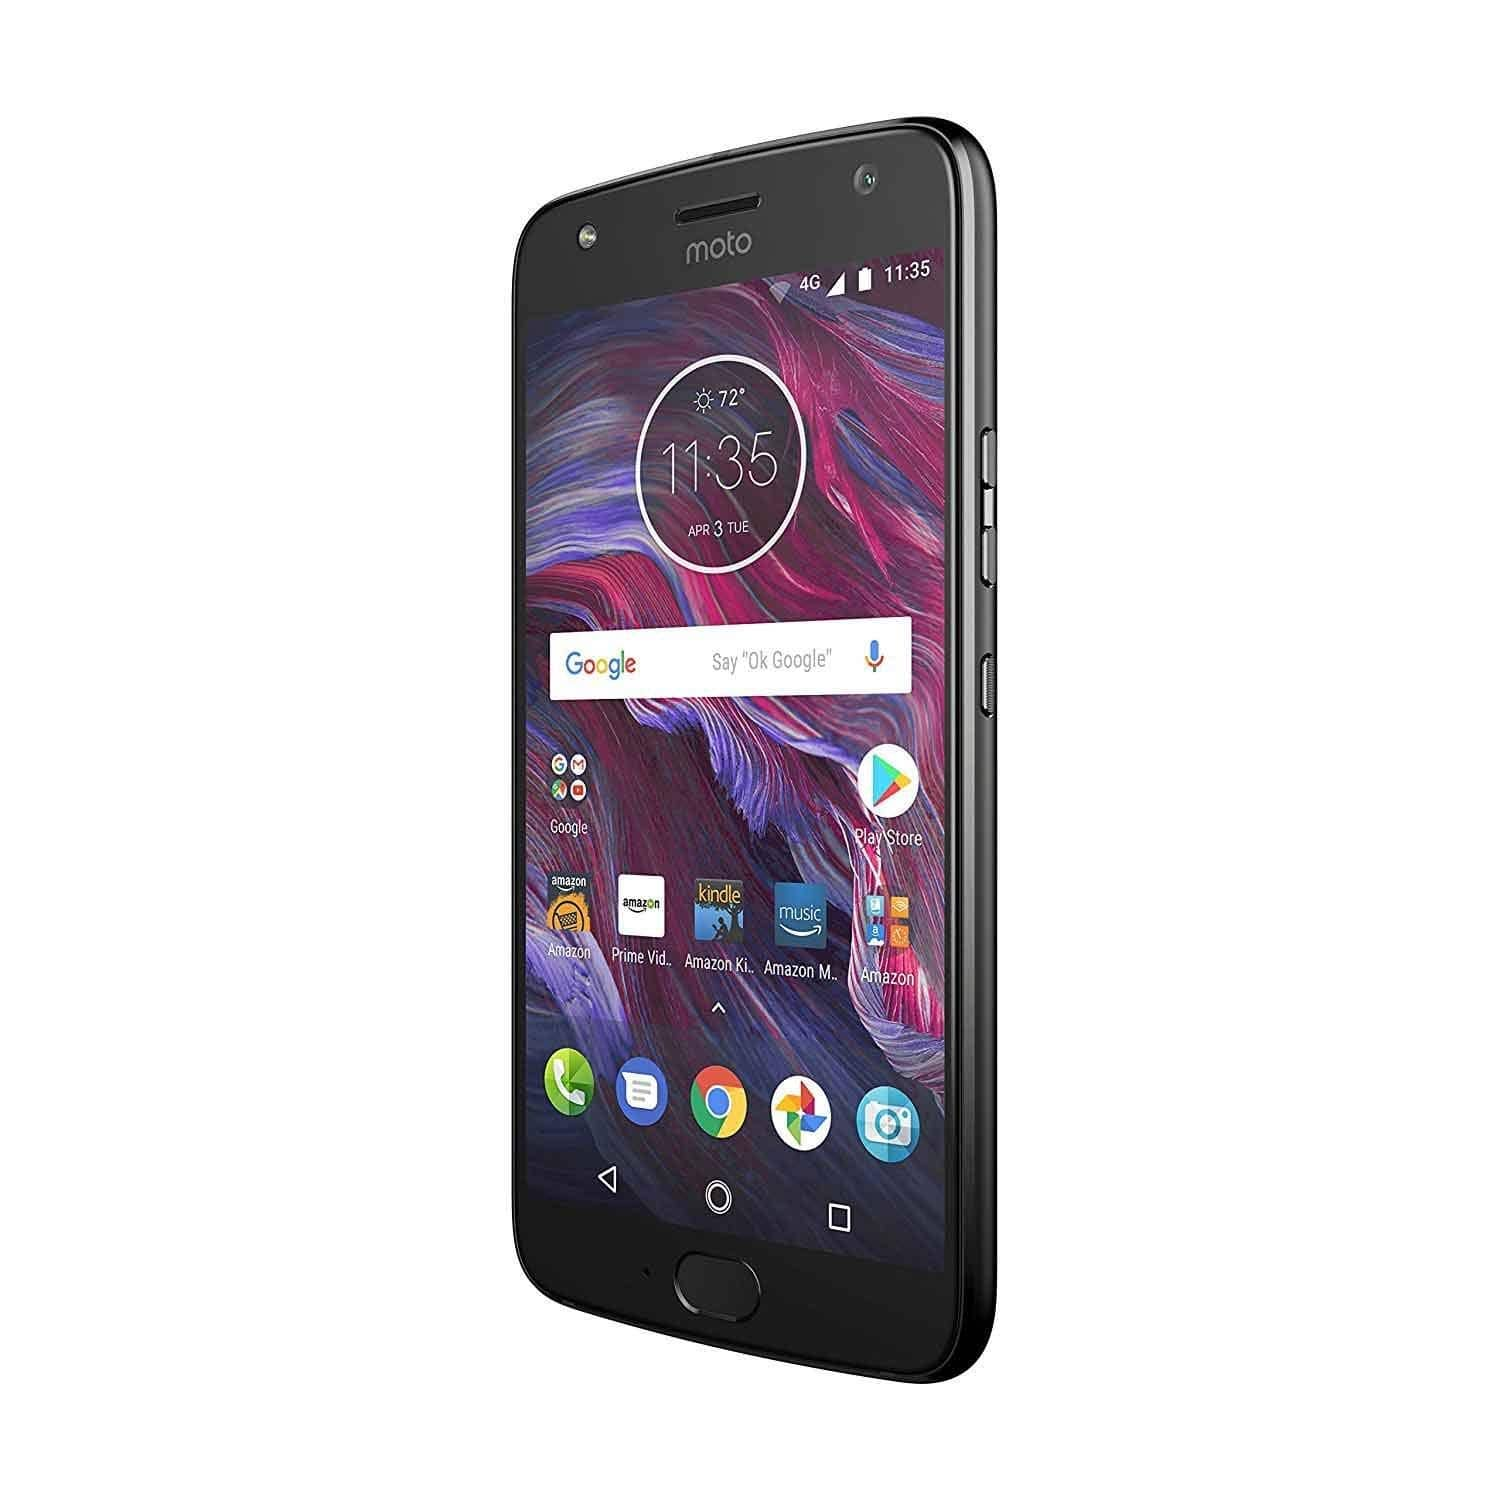 Moto X (4th Generation) - with Amazon Alexa hands-free – 32 GB - Unlocked – Super Black - Prime Exclusive $119.99